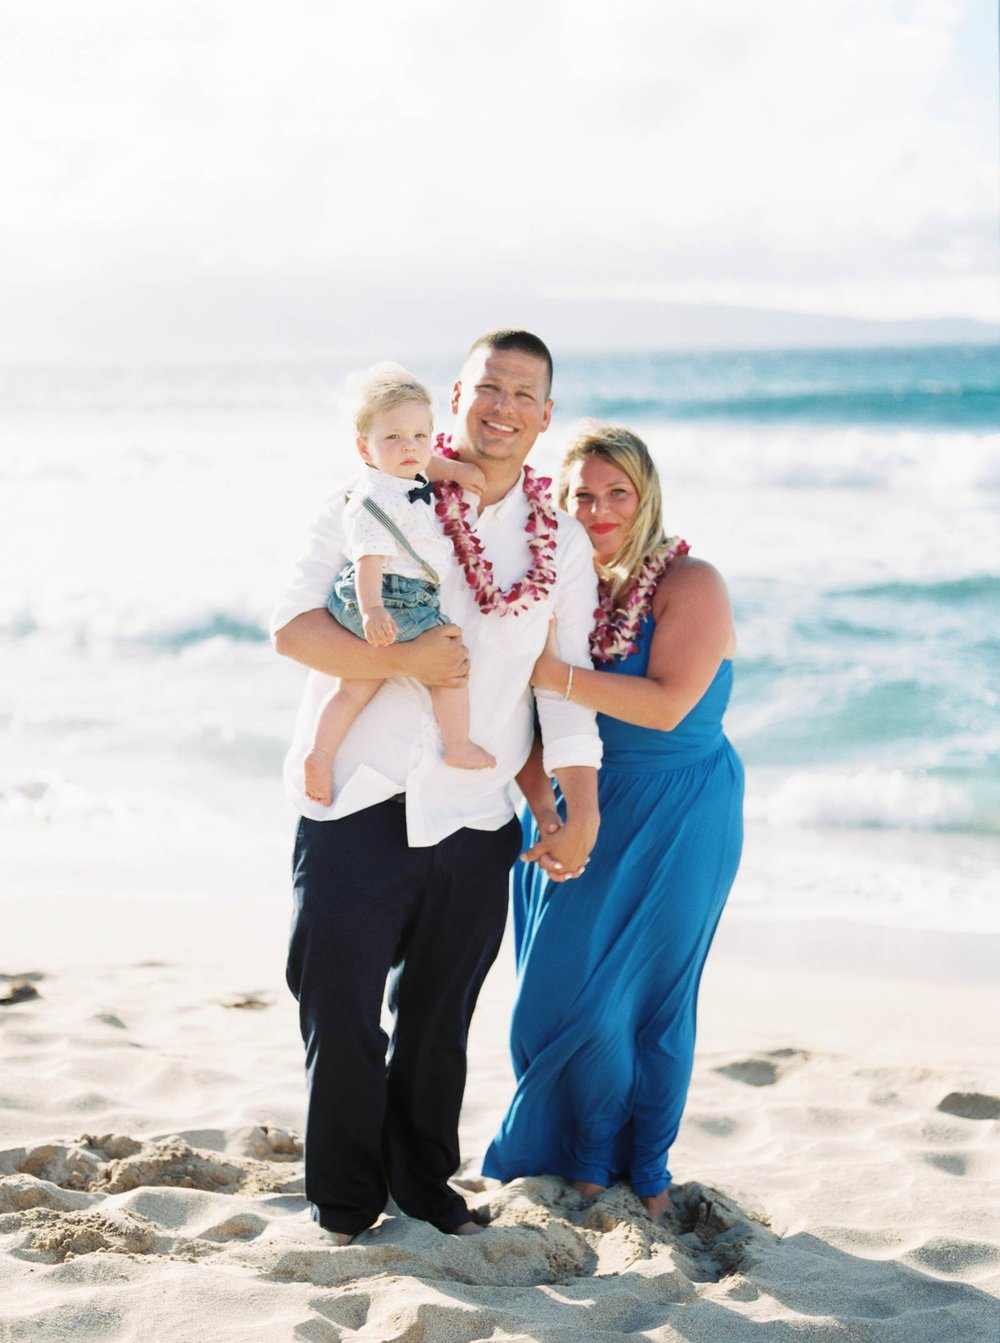 Maui-vow-renewal-family-photos-001.jpg